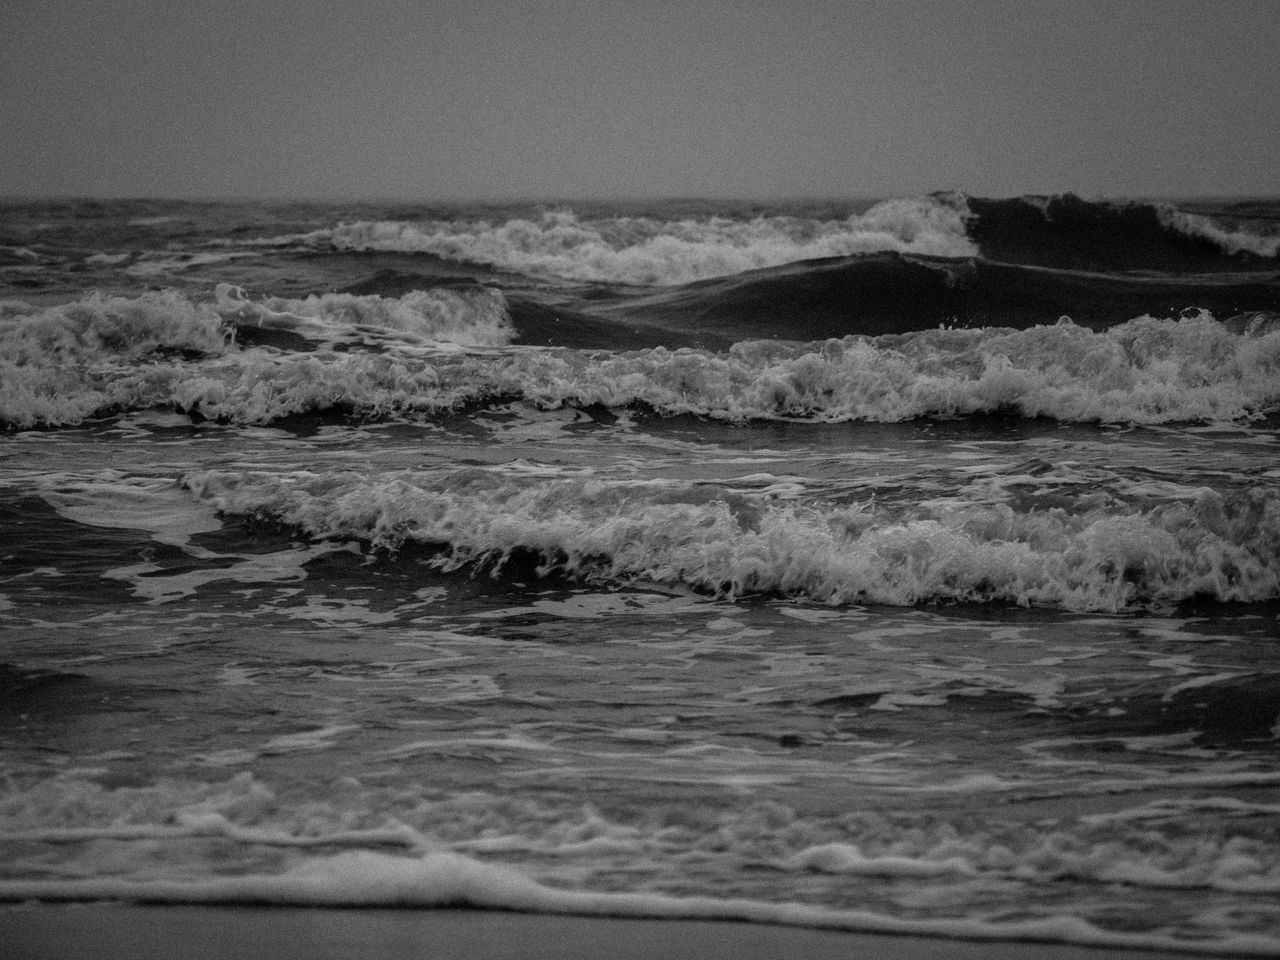 Beach Beauty In Nature Black And White Day Horizon Over Water Landscape Nature No People Outdoors Power In Nature Sand Scenics Sea Sky Tide Tranquil Scene Tranquility Water Wave